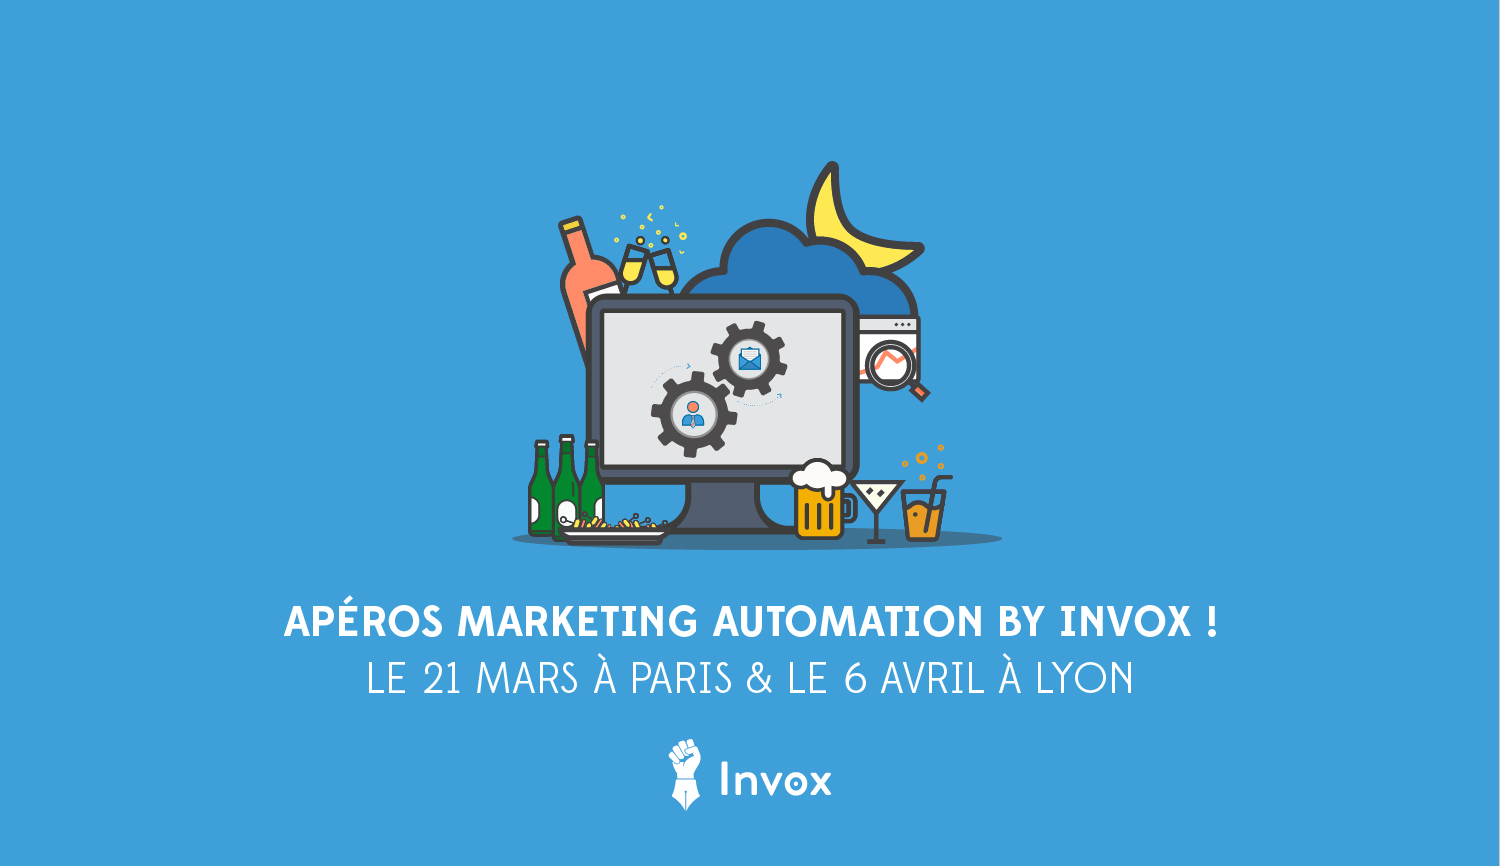 apéro marketing automation invox Lyon et Paris